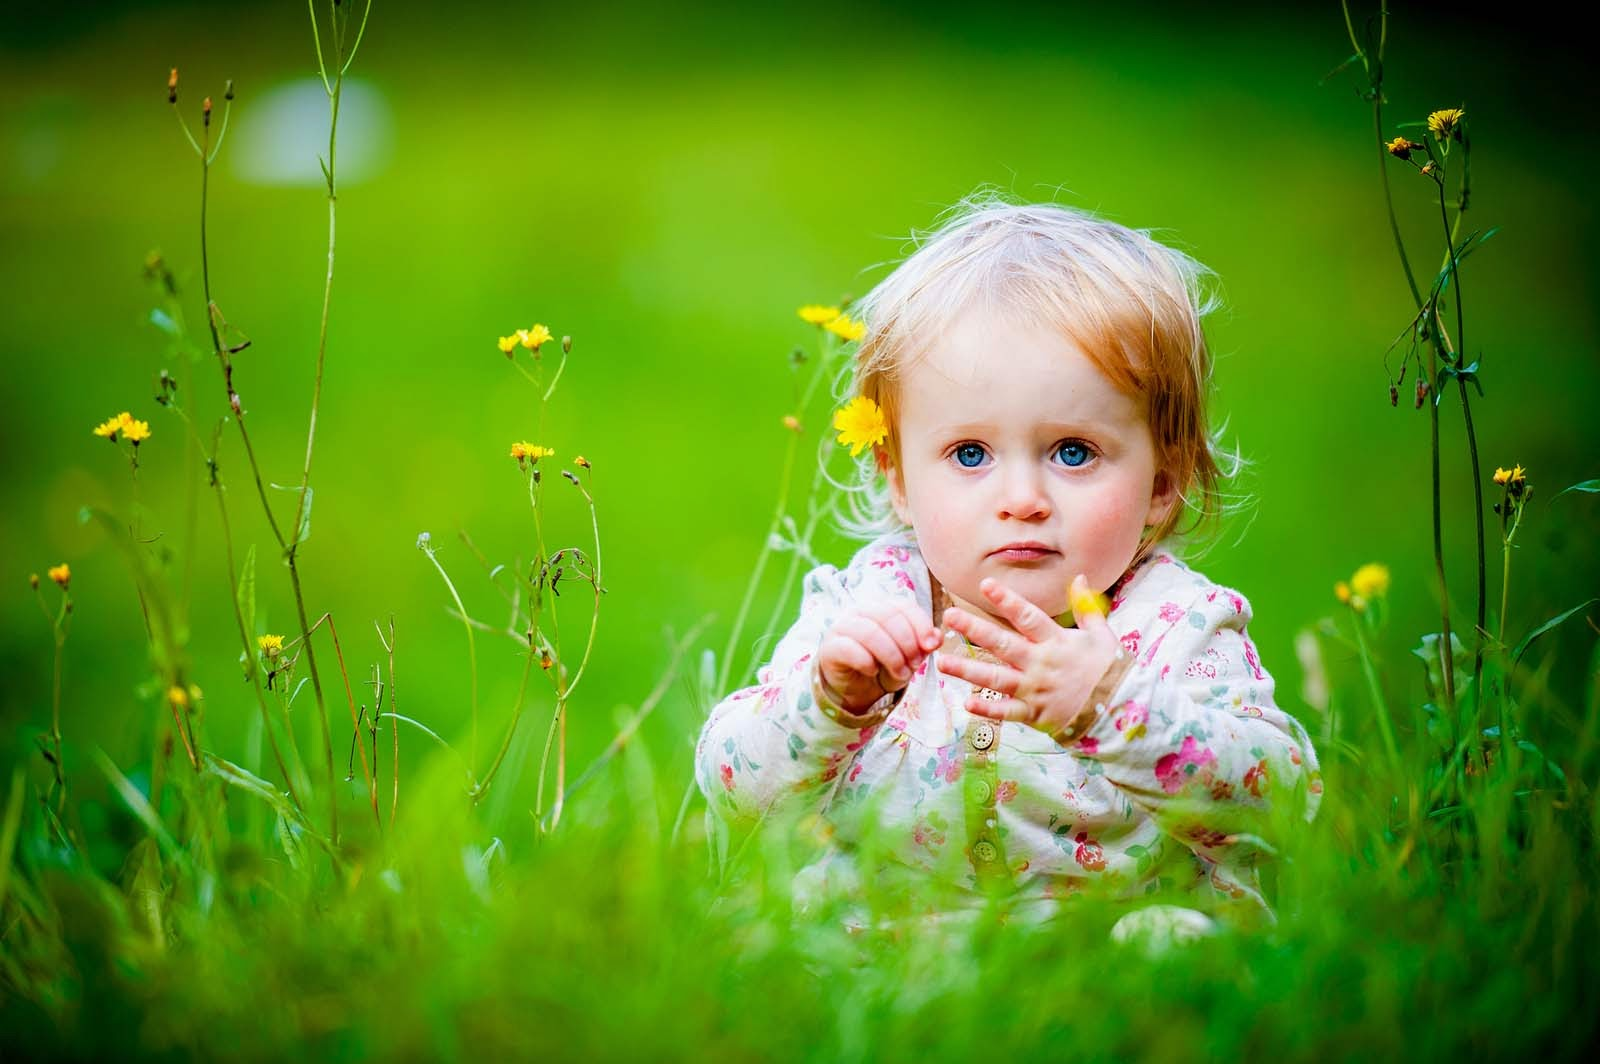 field-european-baby-girls-hd-wallpapers